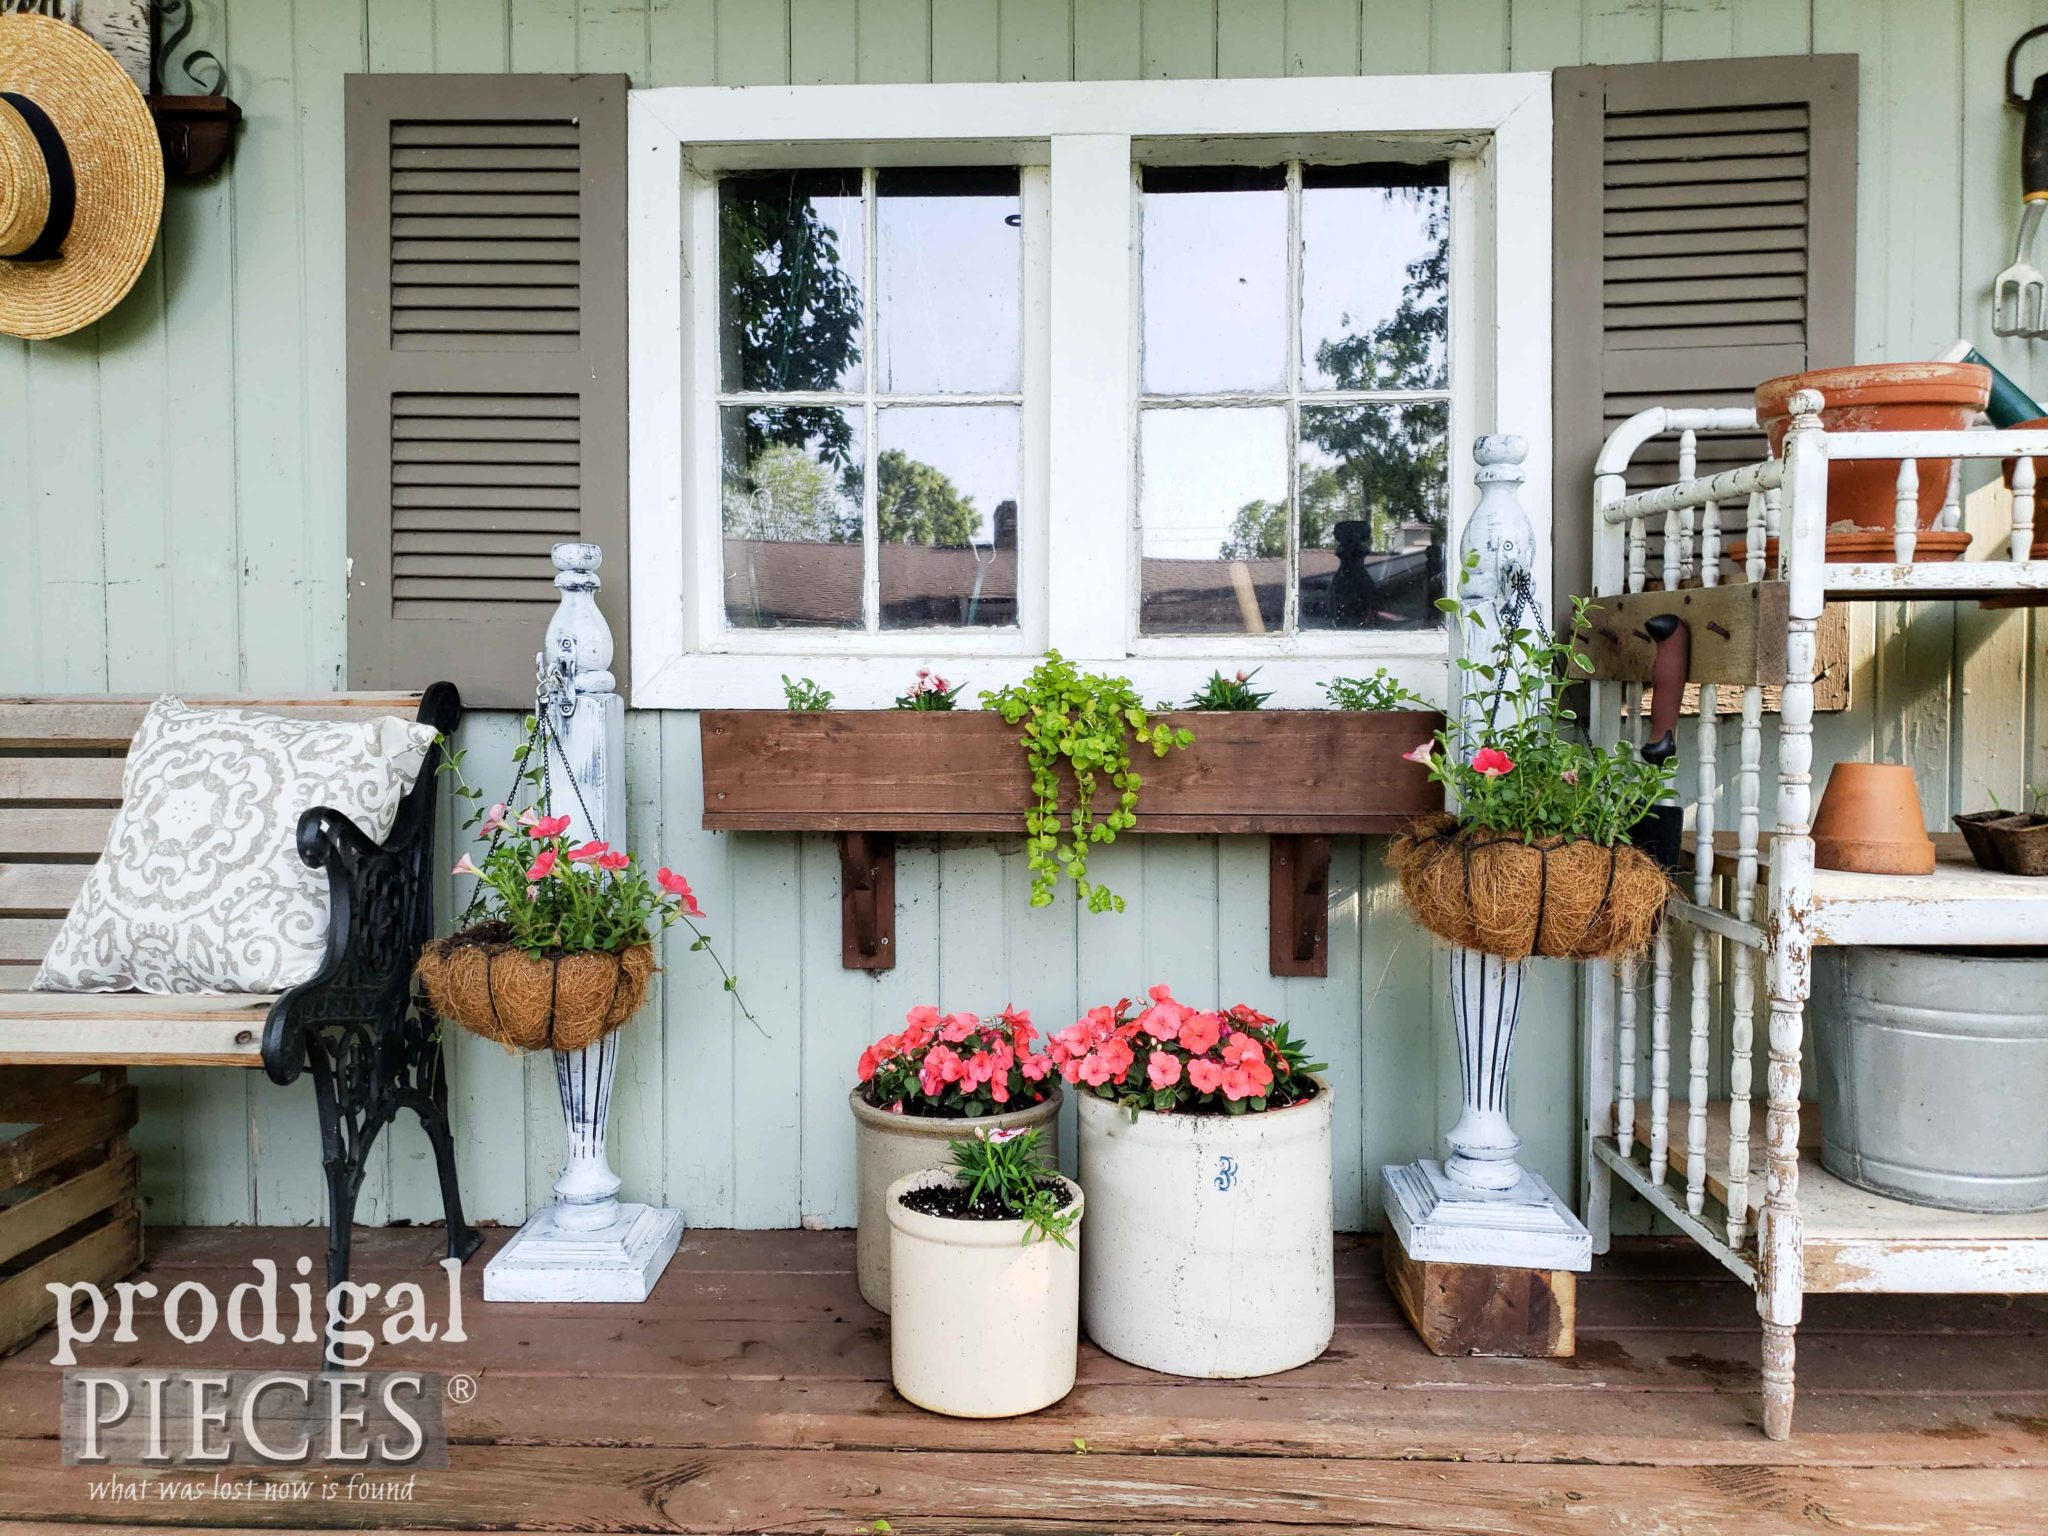 Farmhouse Style Garden Shed with Upcycled Decor by Larissa of Prodigal Pieces | prodigalpieces.com #prodigalpieces #garden #diy #home #homedecor #farmhouse